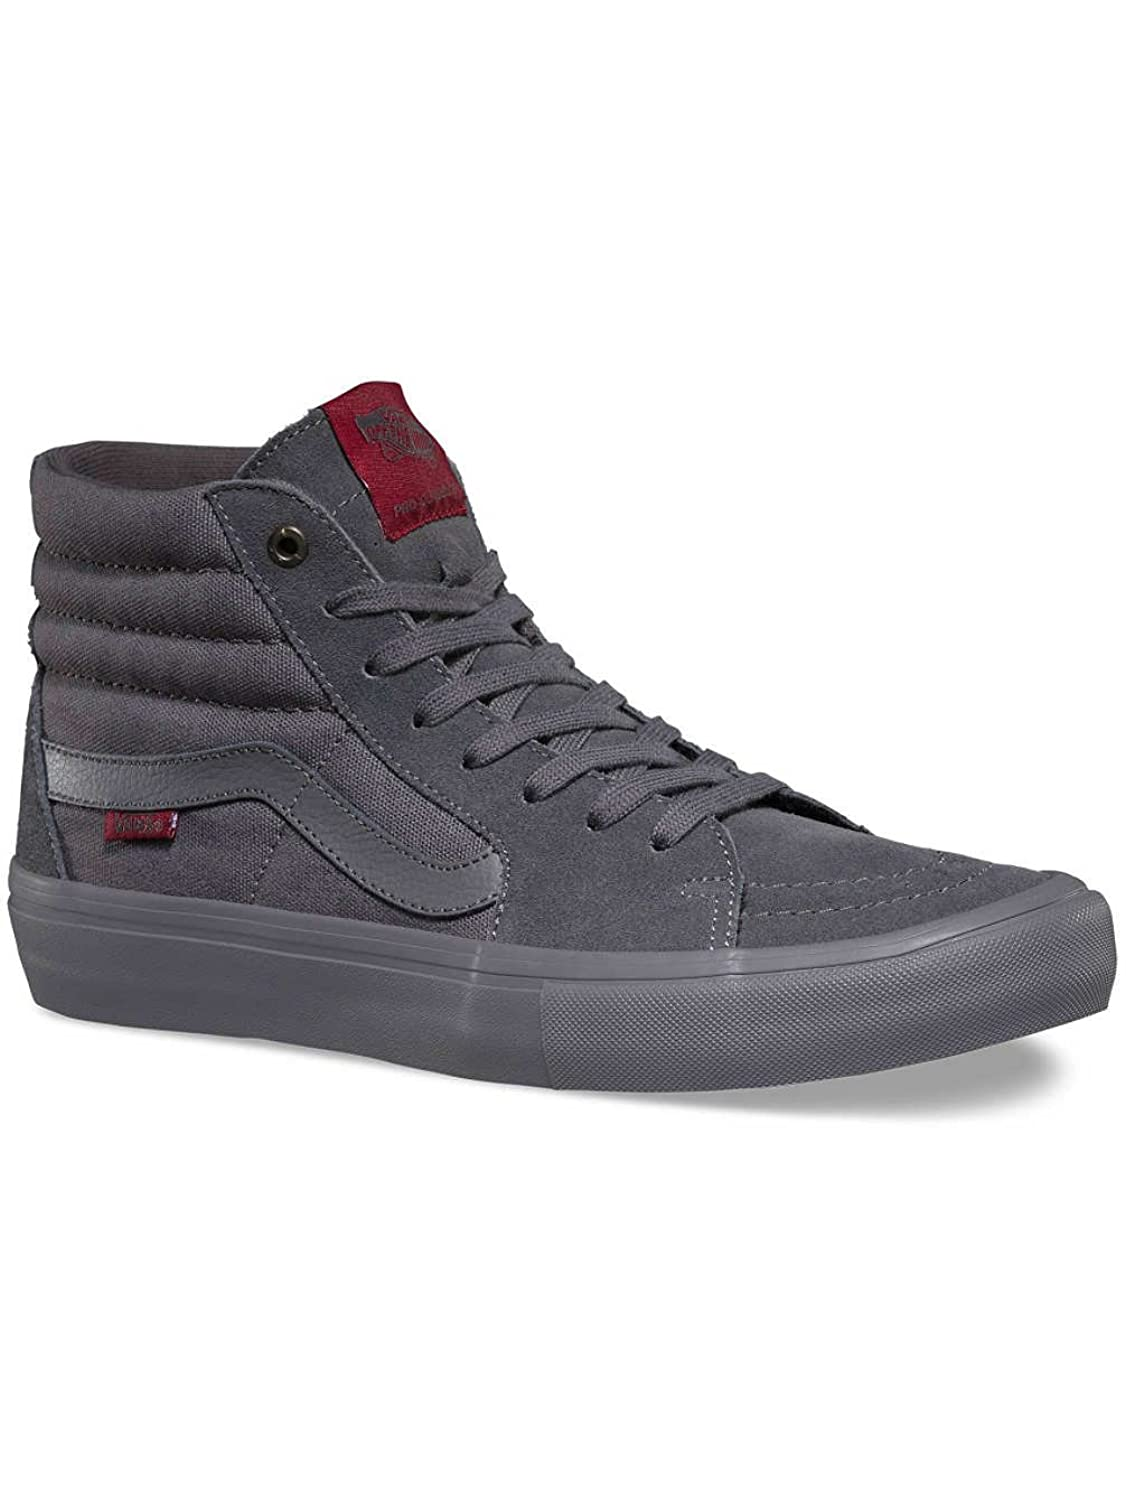 bca47182034a Vans Sk8-Hi Pro Mono Tornado Men's Skate Shoes durable modeling ...